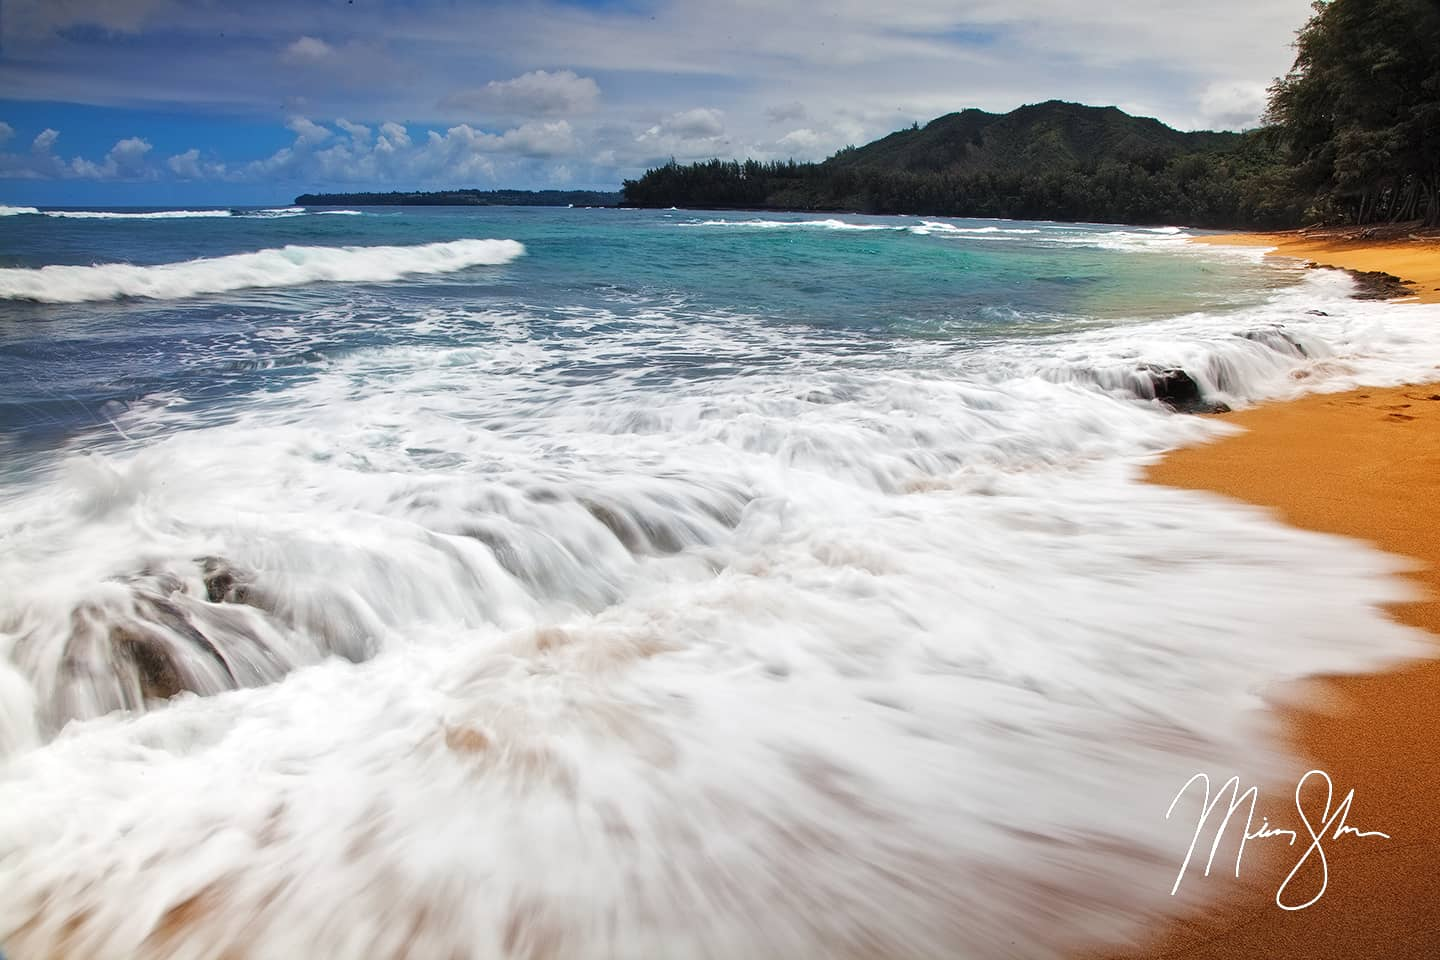 Waves of Wainiha Beach